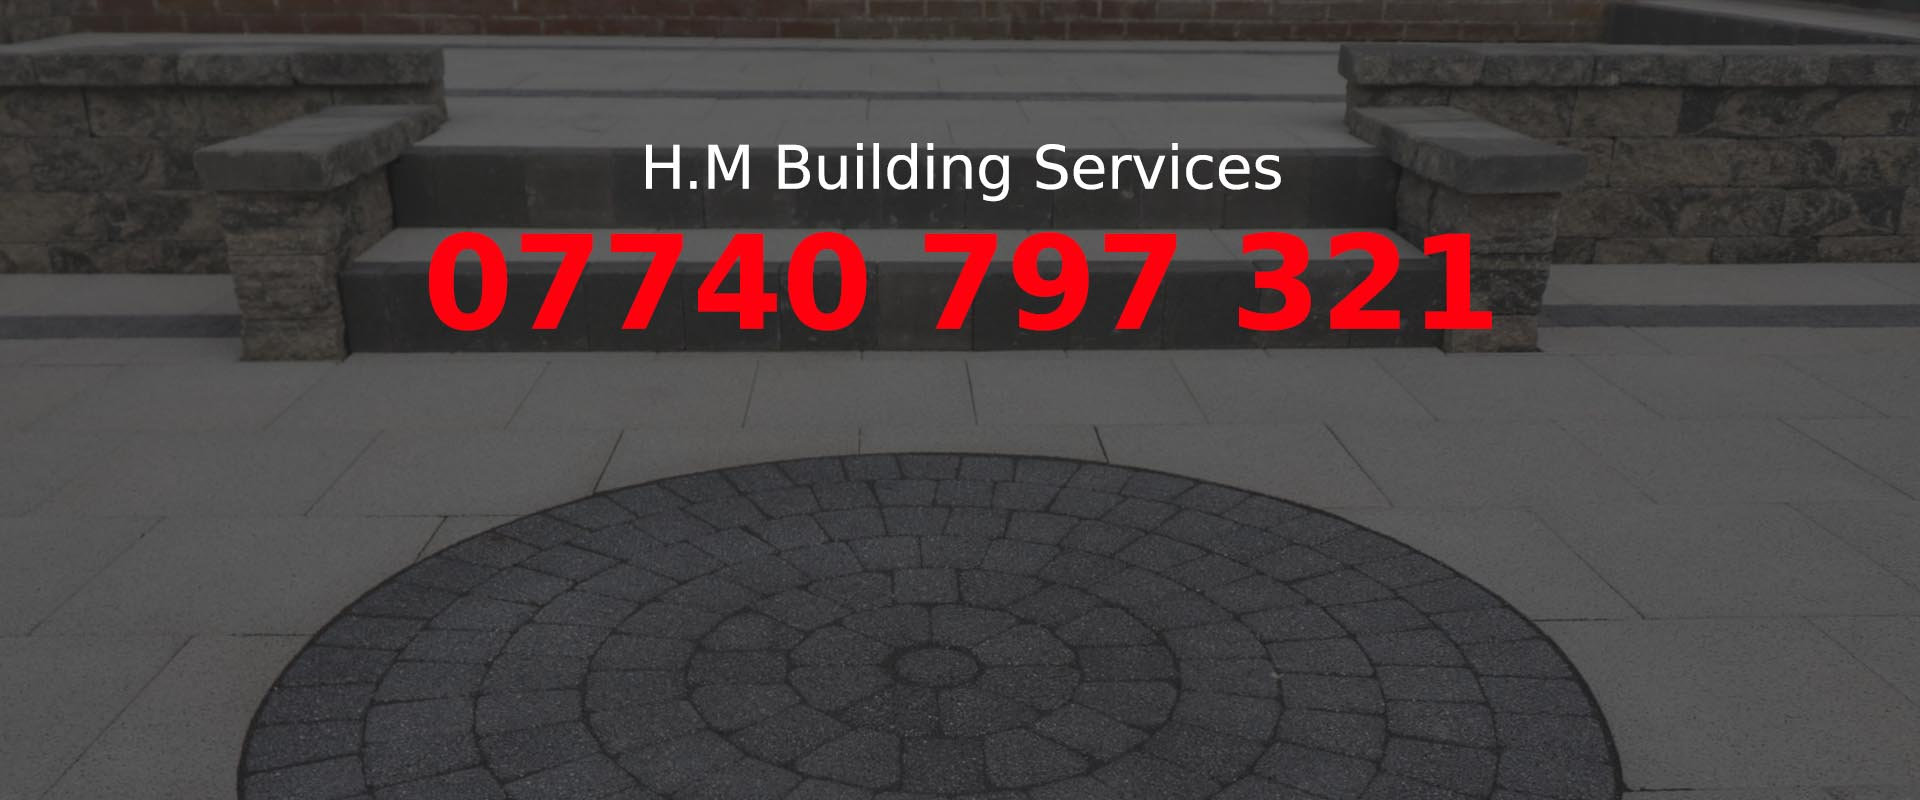 HM BUilding Service Paving